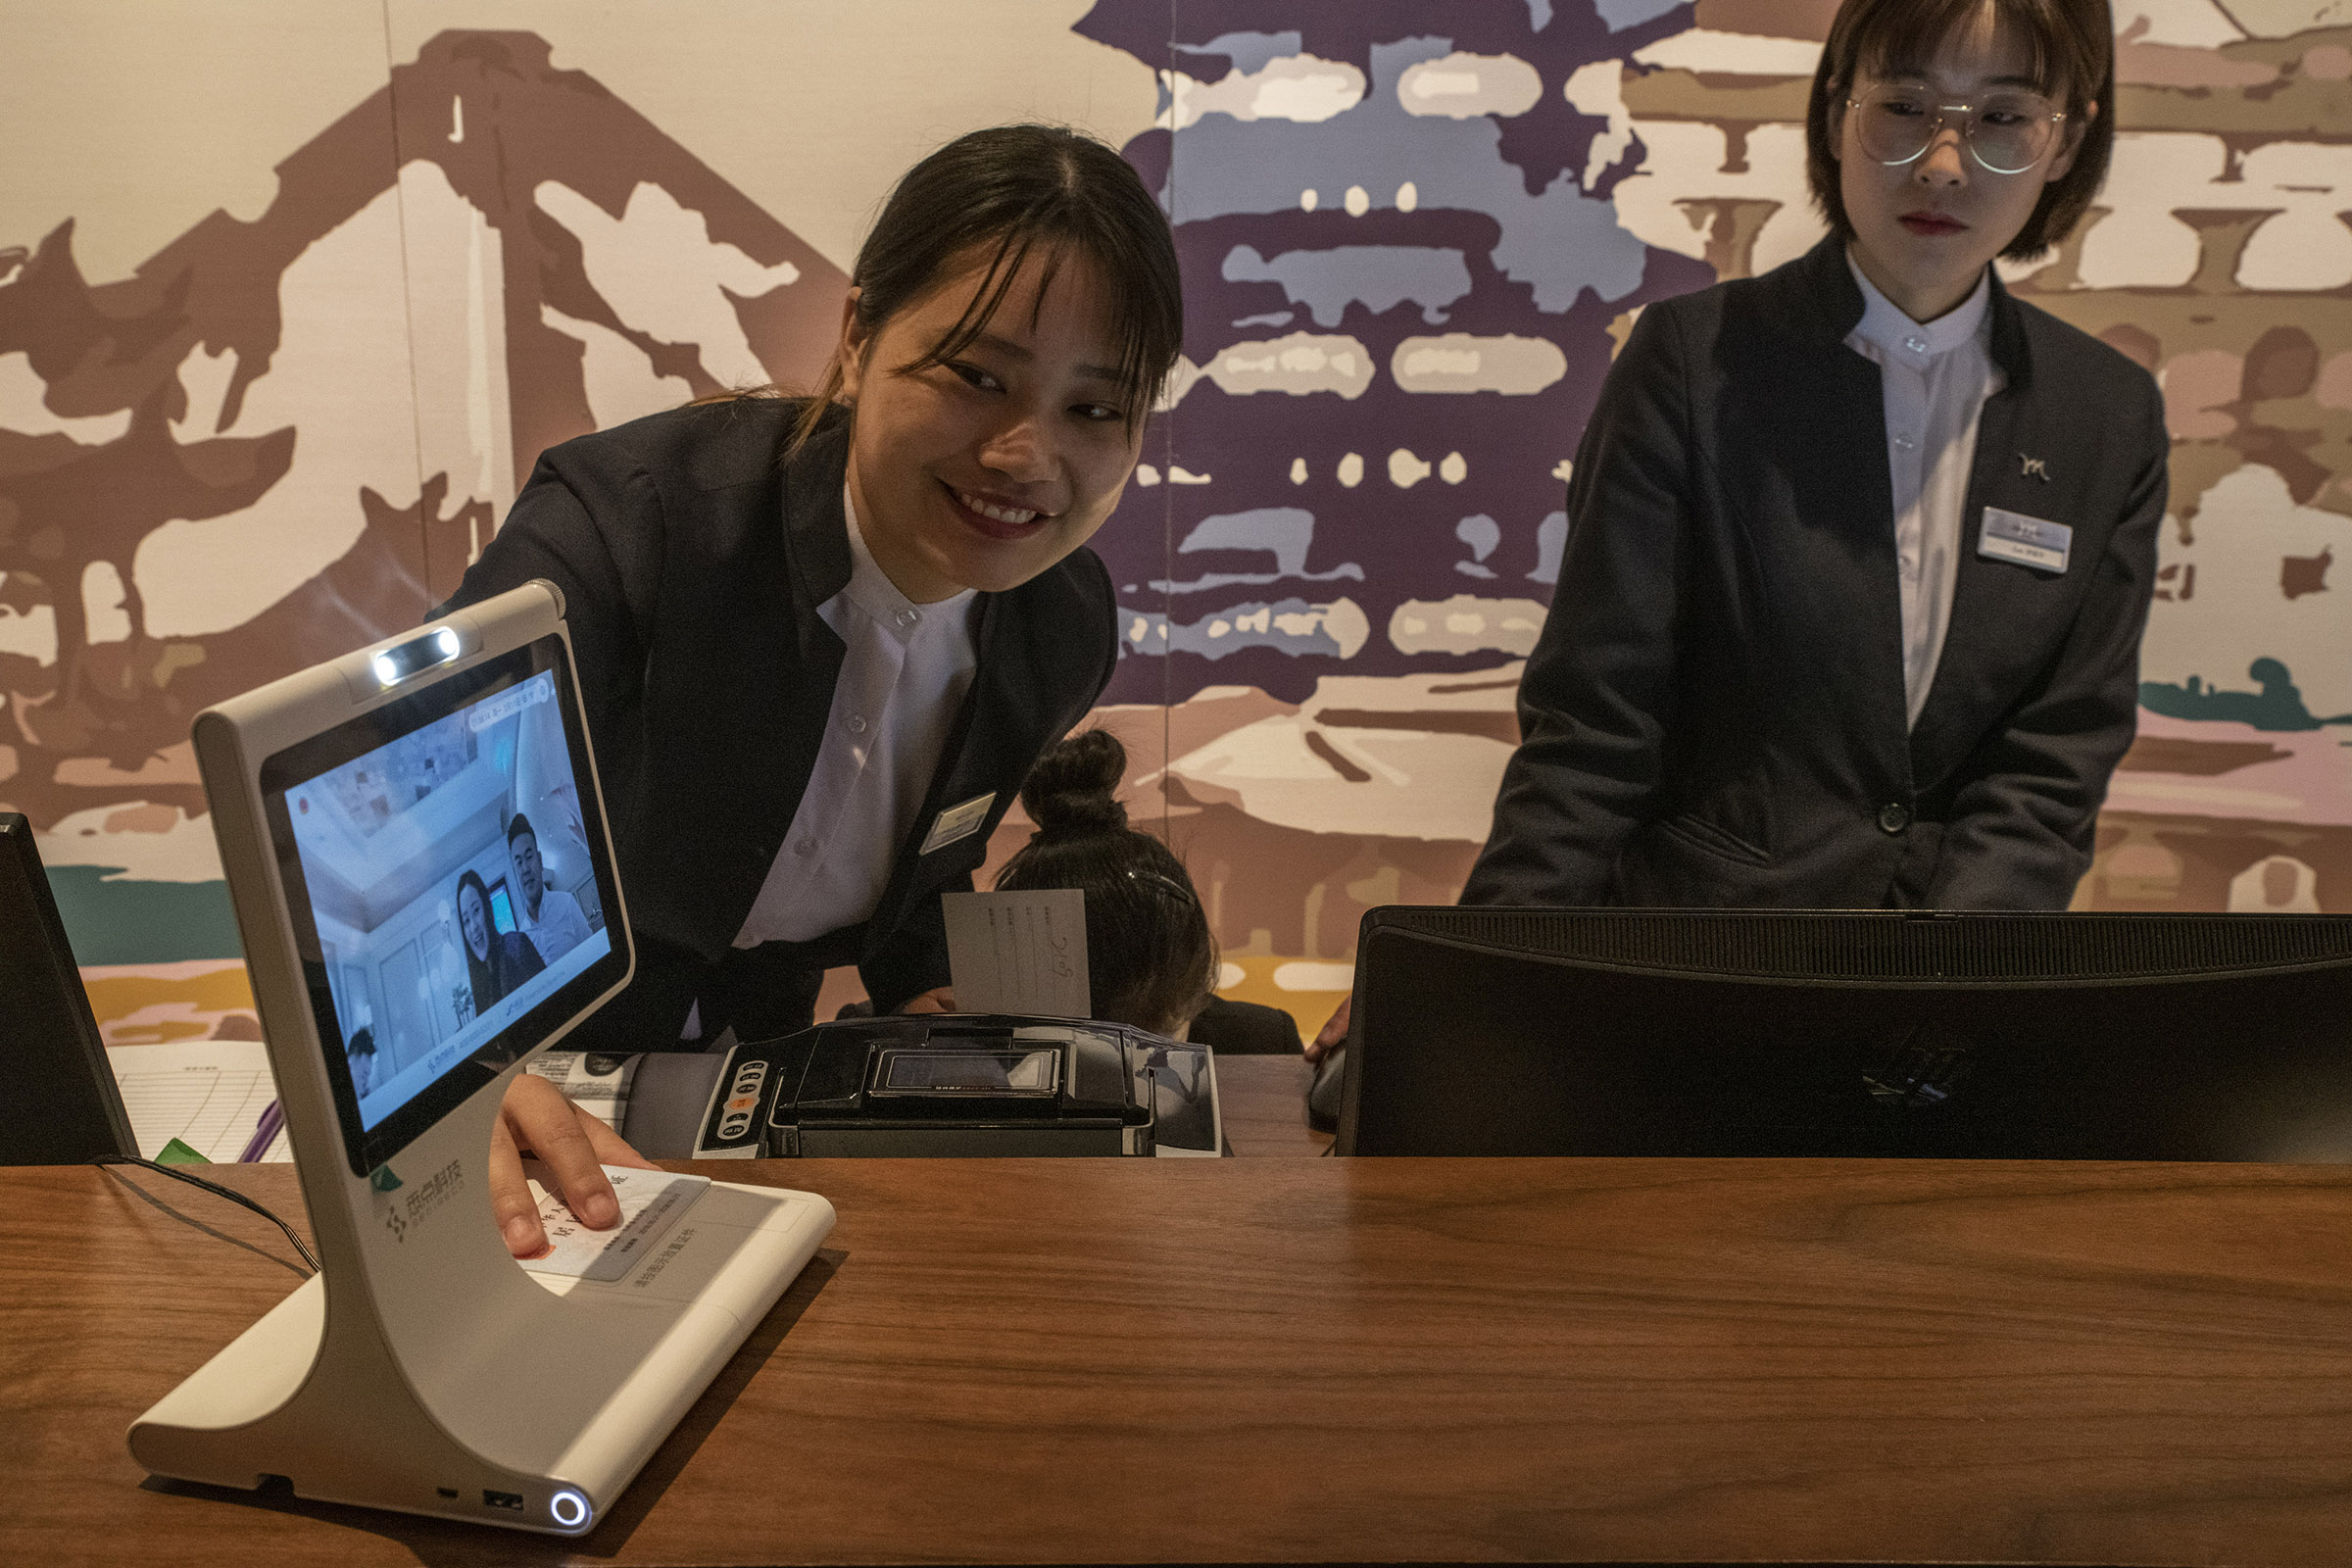 Receptionists at a hotel in Hangzhou are scanning the ID of guests checking in. The scanner equipped with a camera and a facial recognition software is ensuring that the guests are who they claim to be.